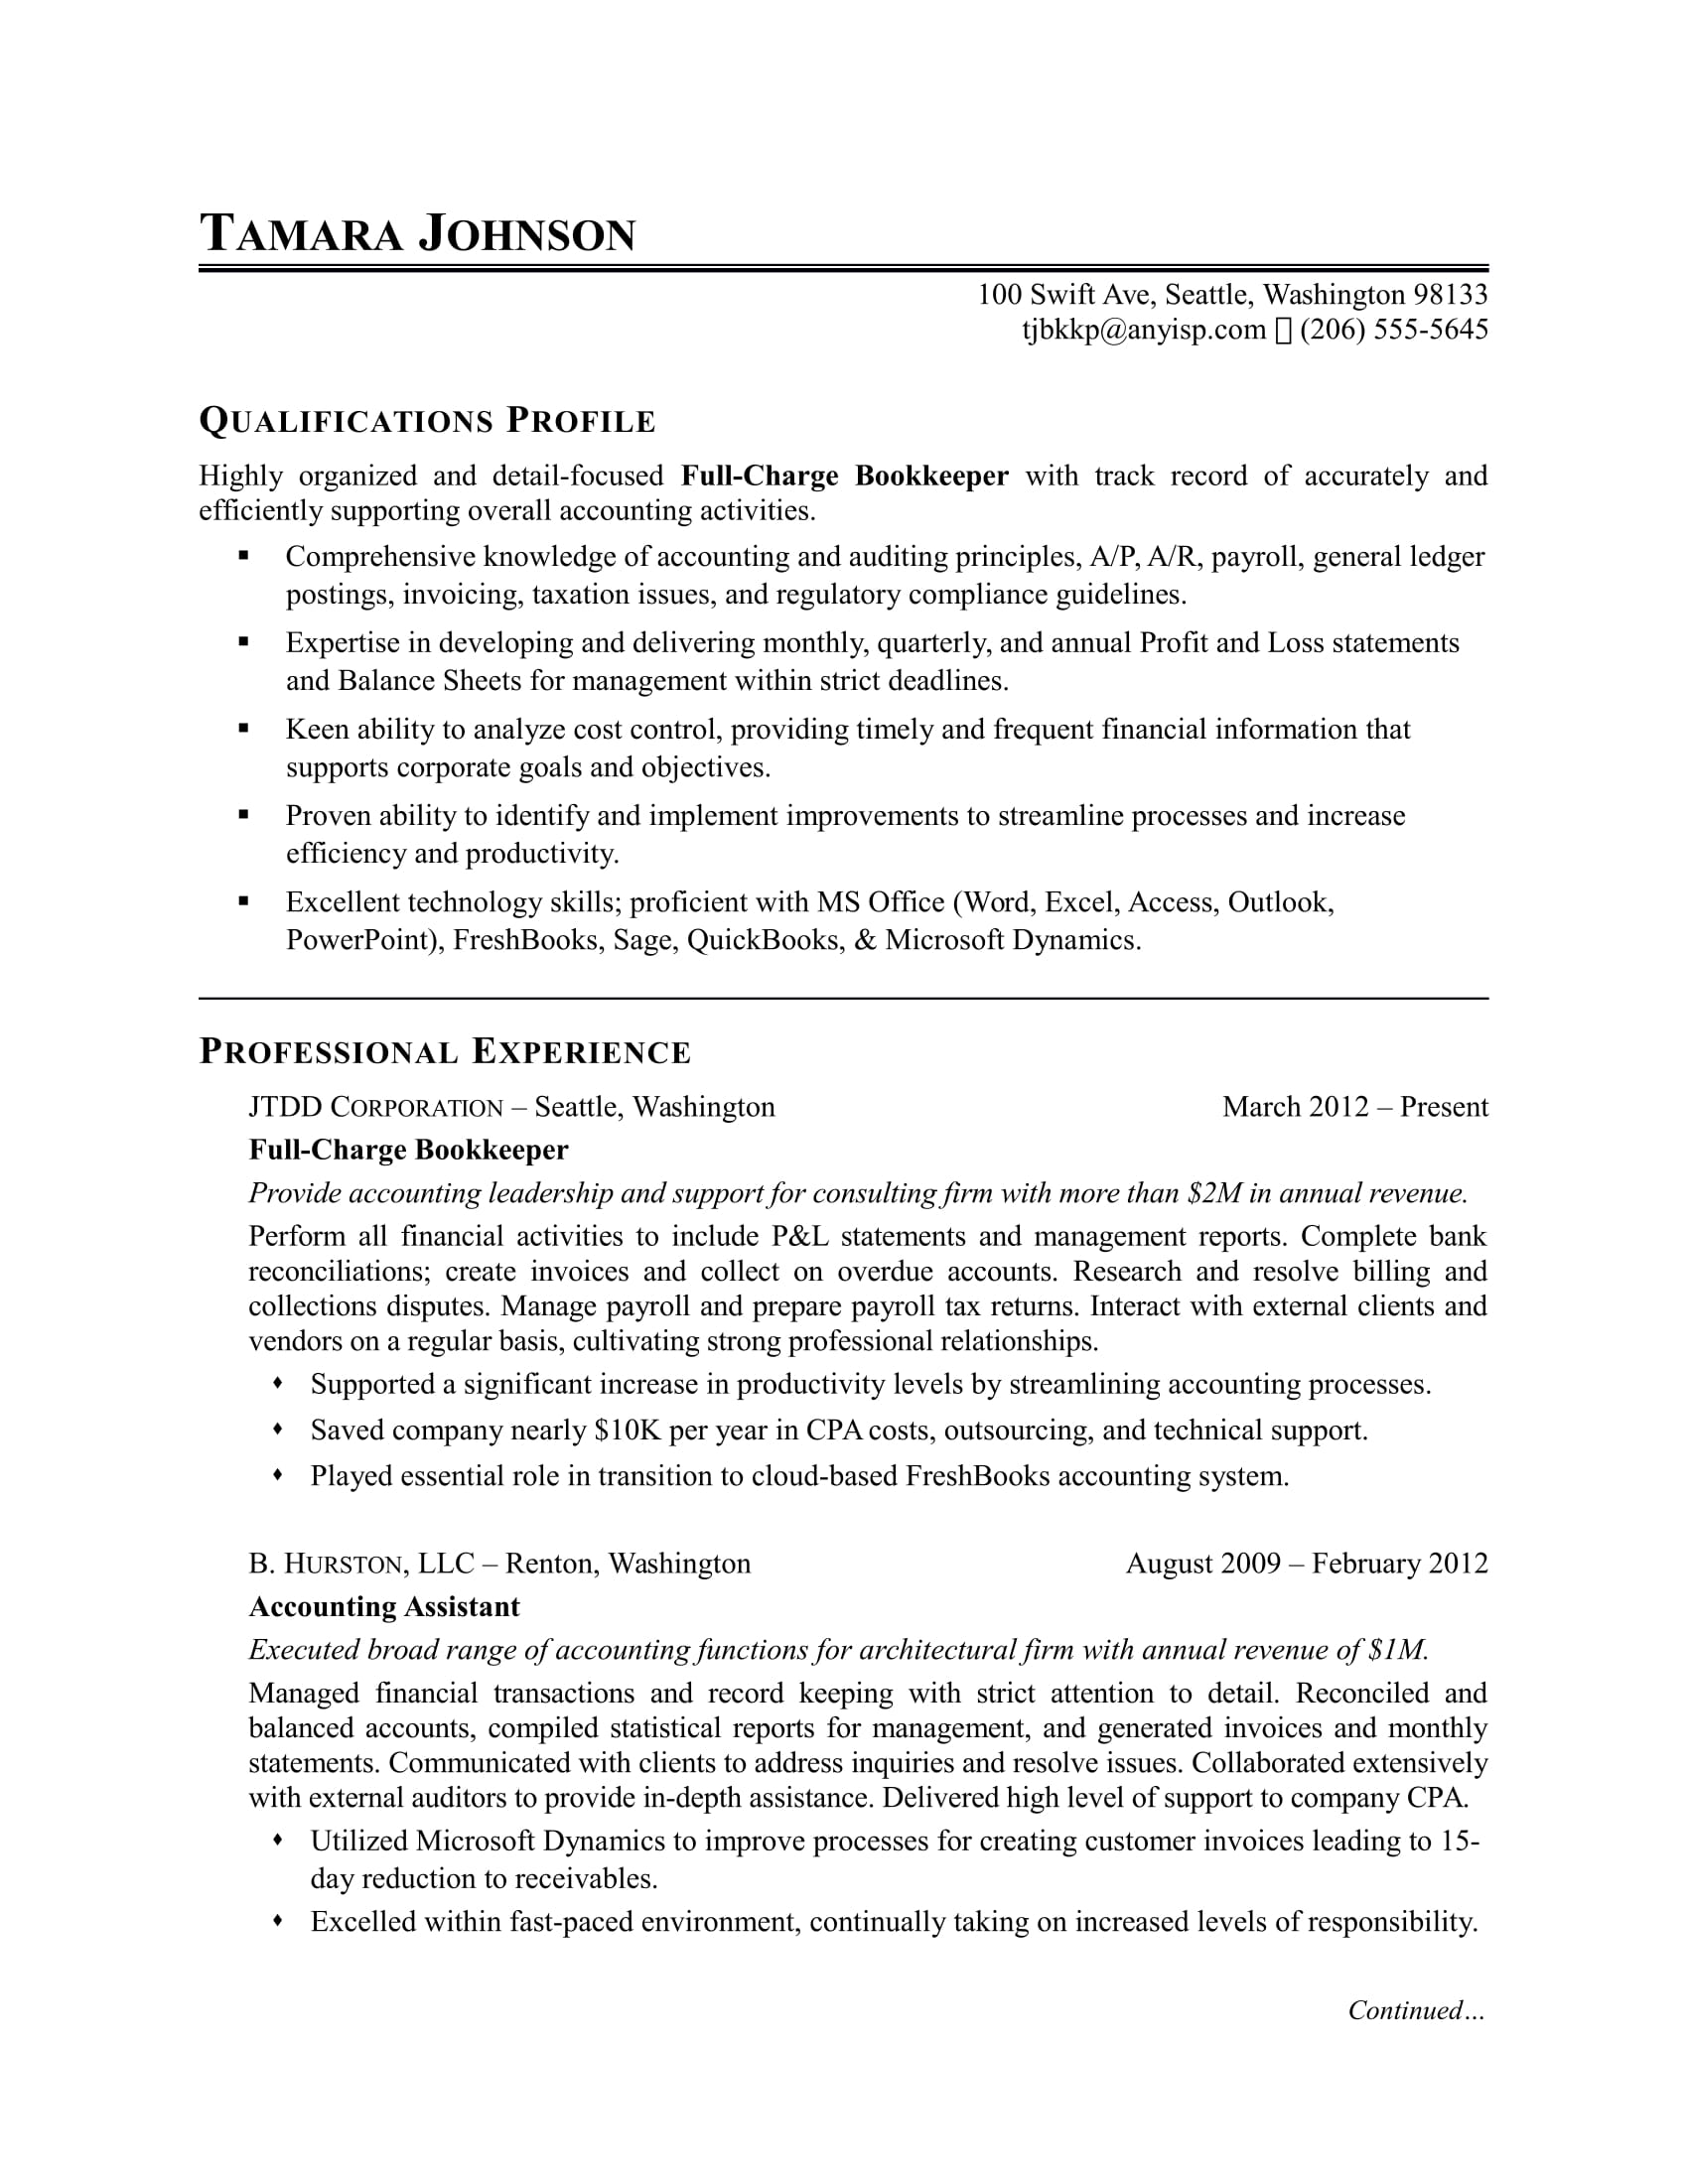 Example Resumes Bookkeeper Resume Sample Monster